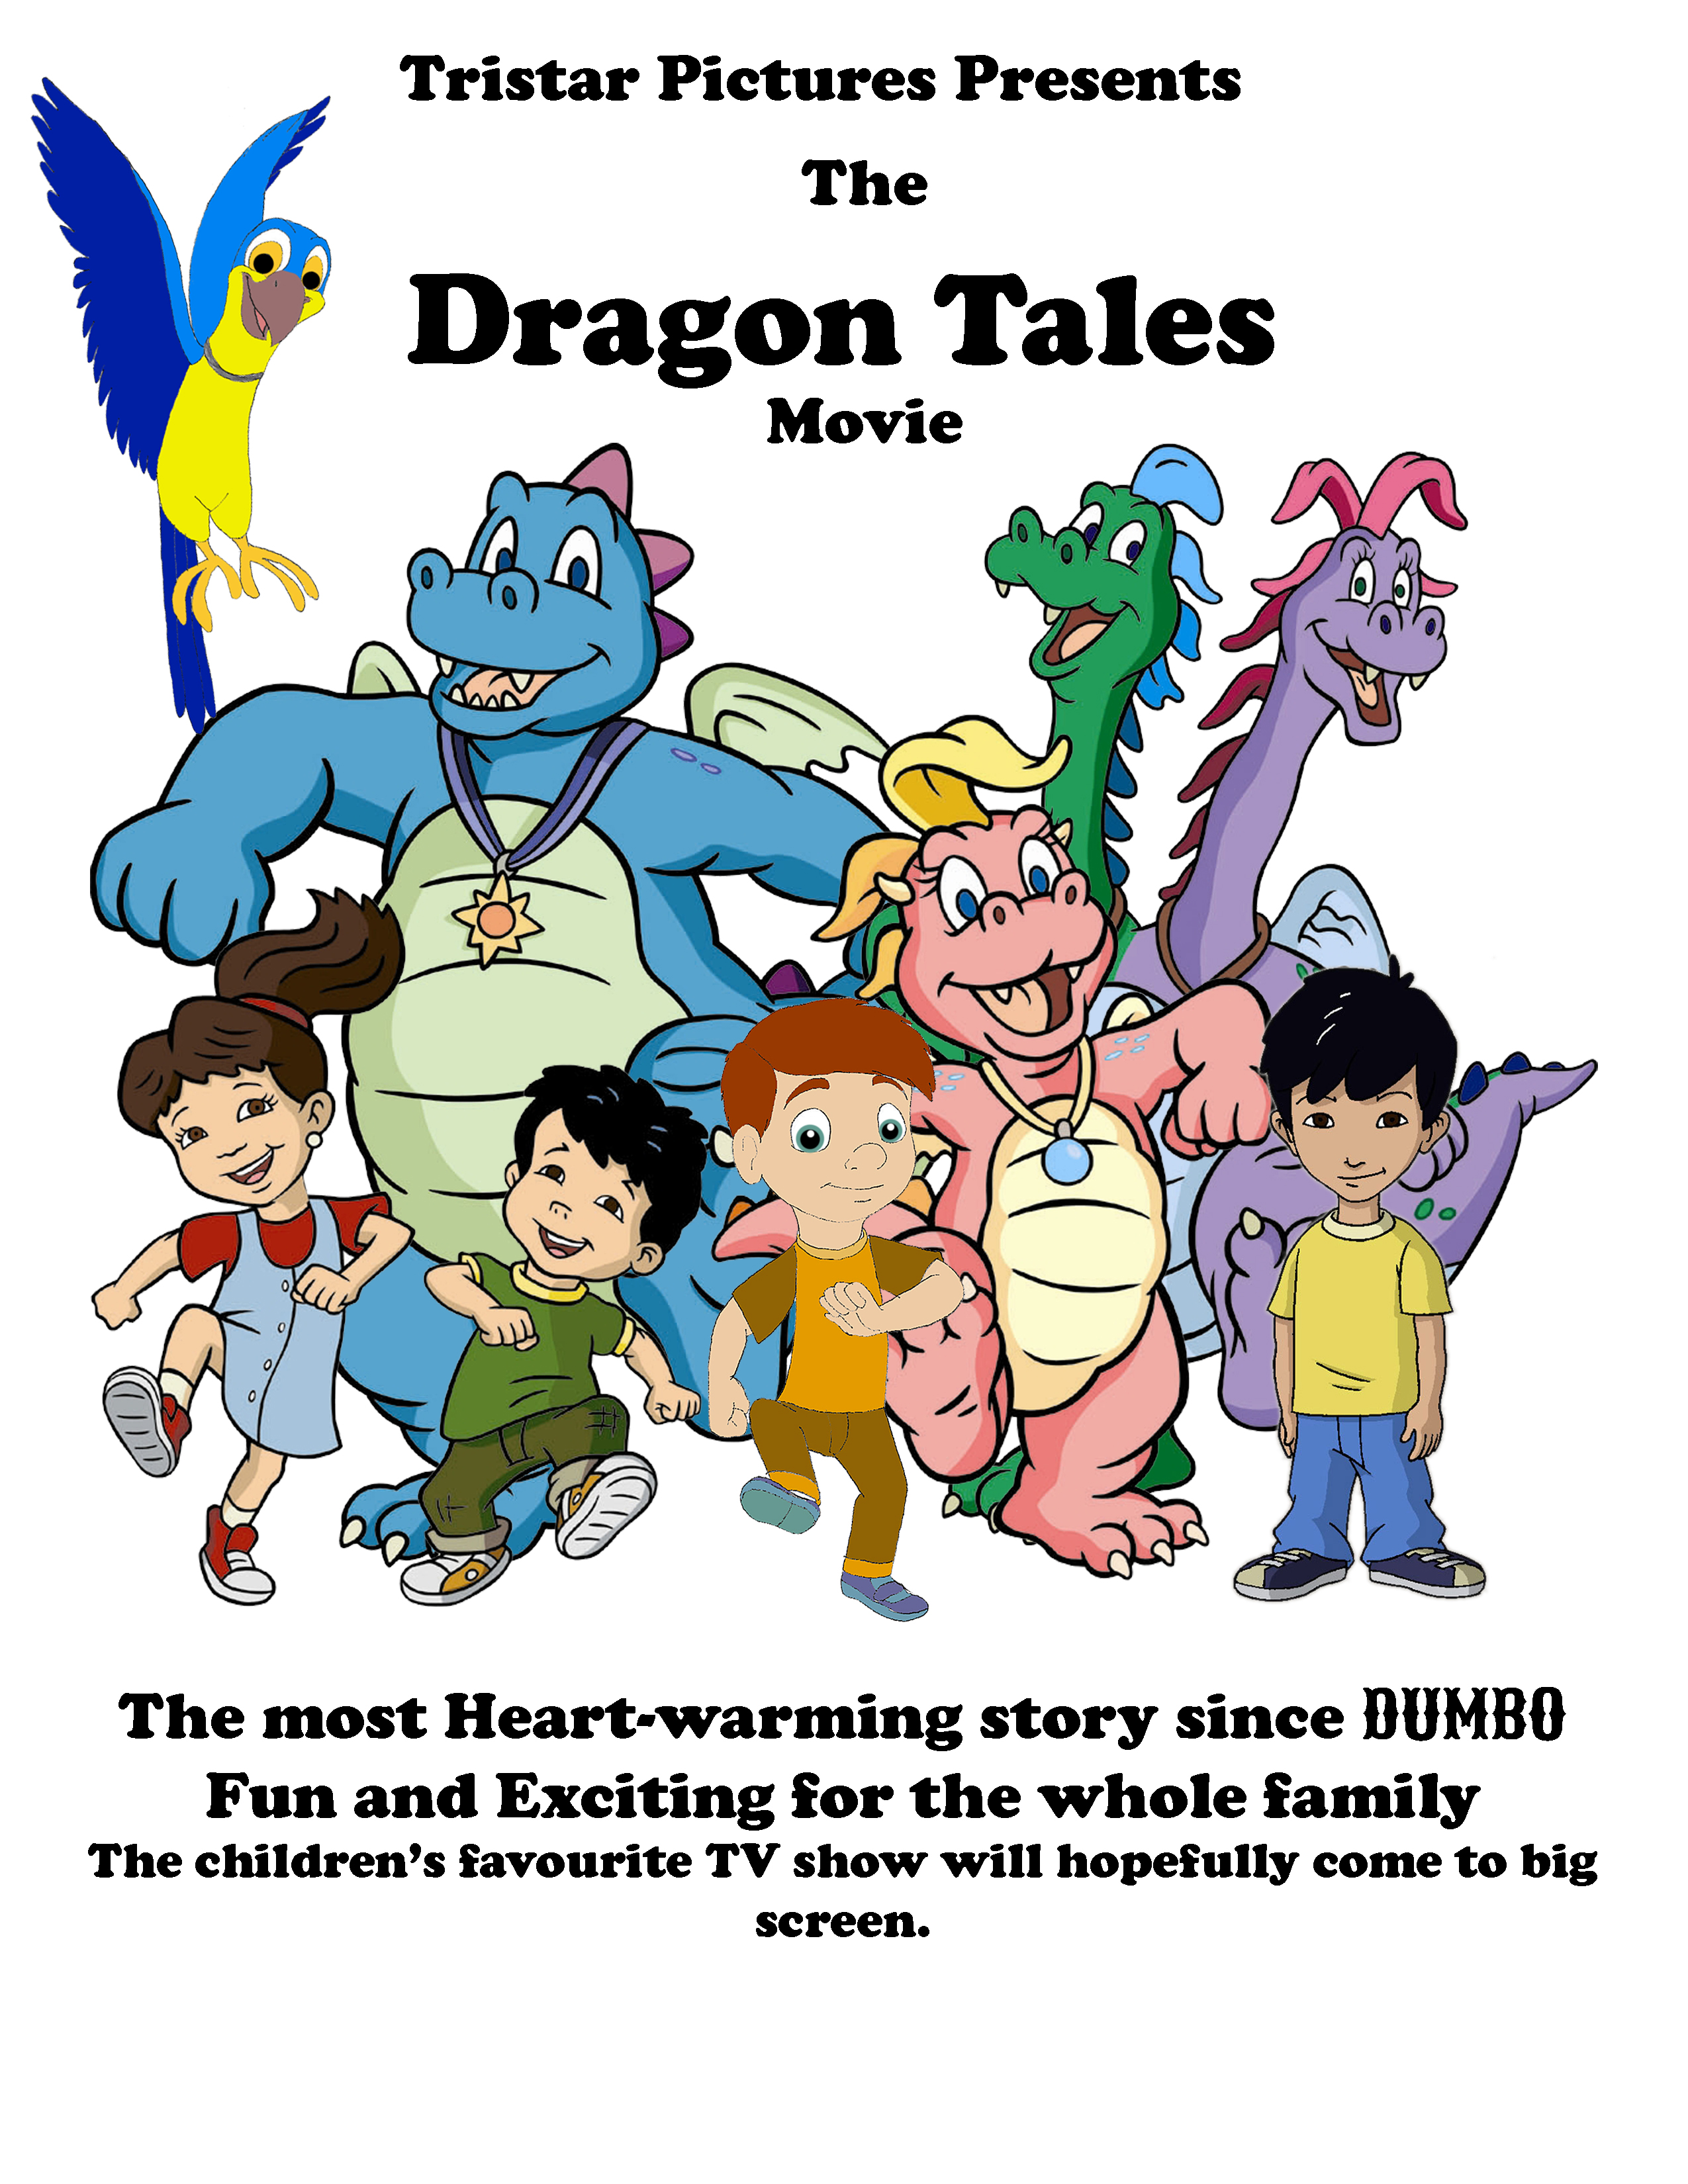 Dragon Tales Images The Dragon Tales Movie Hd Wallpaper And